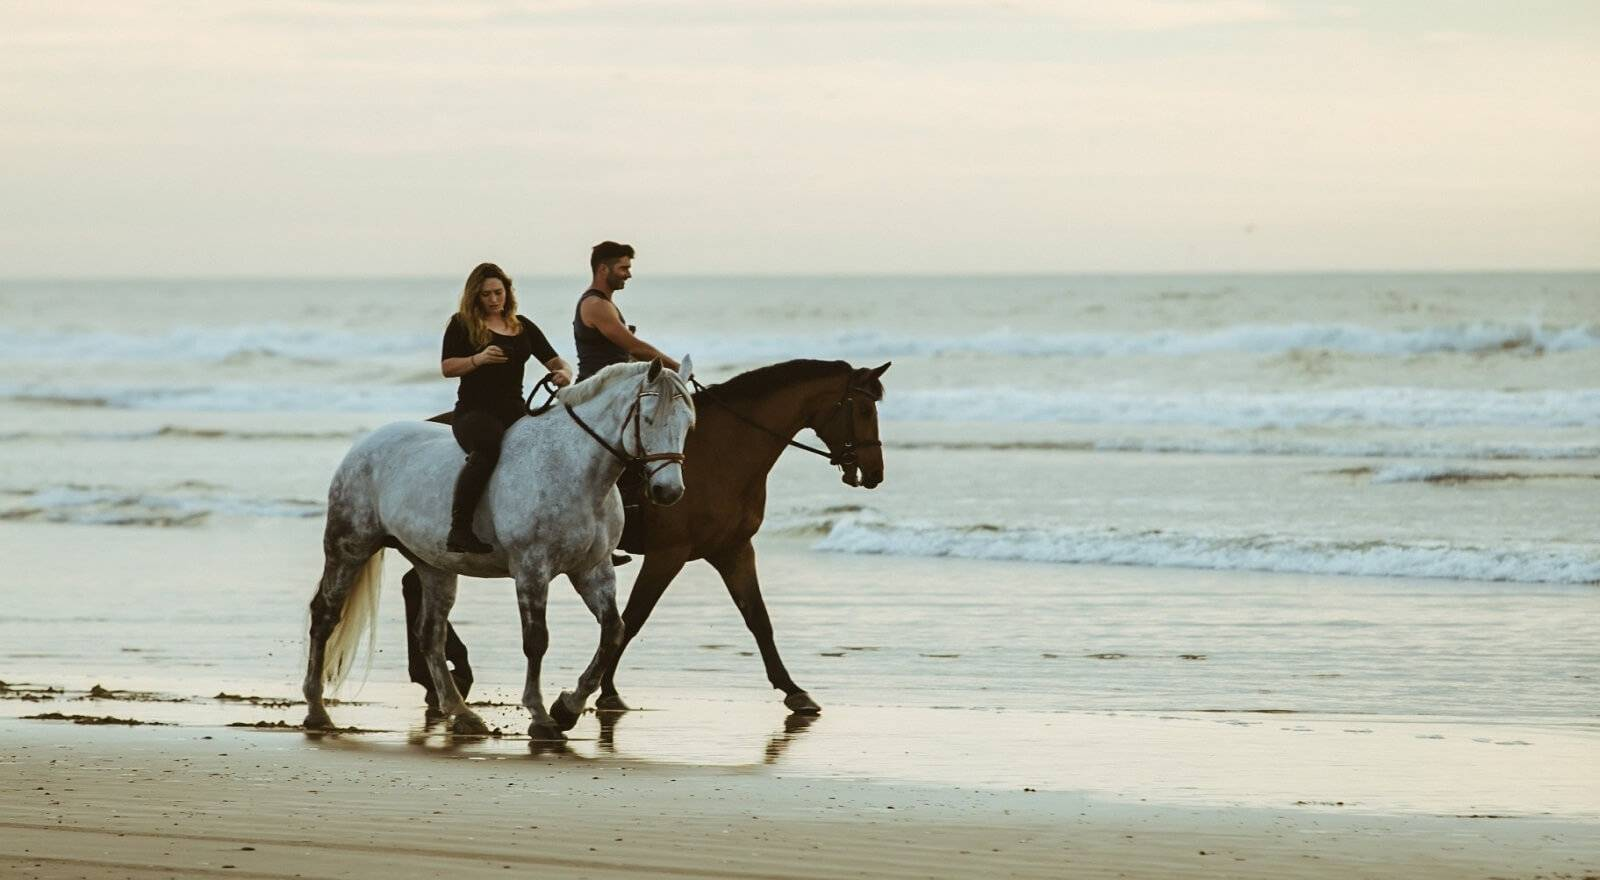 Horseback Beach Ride at Belle Mare, Mauritius